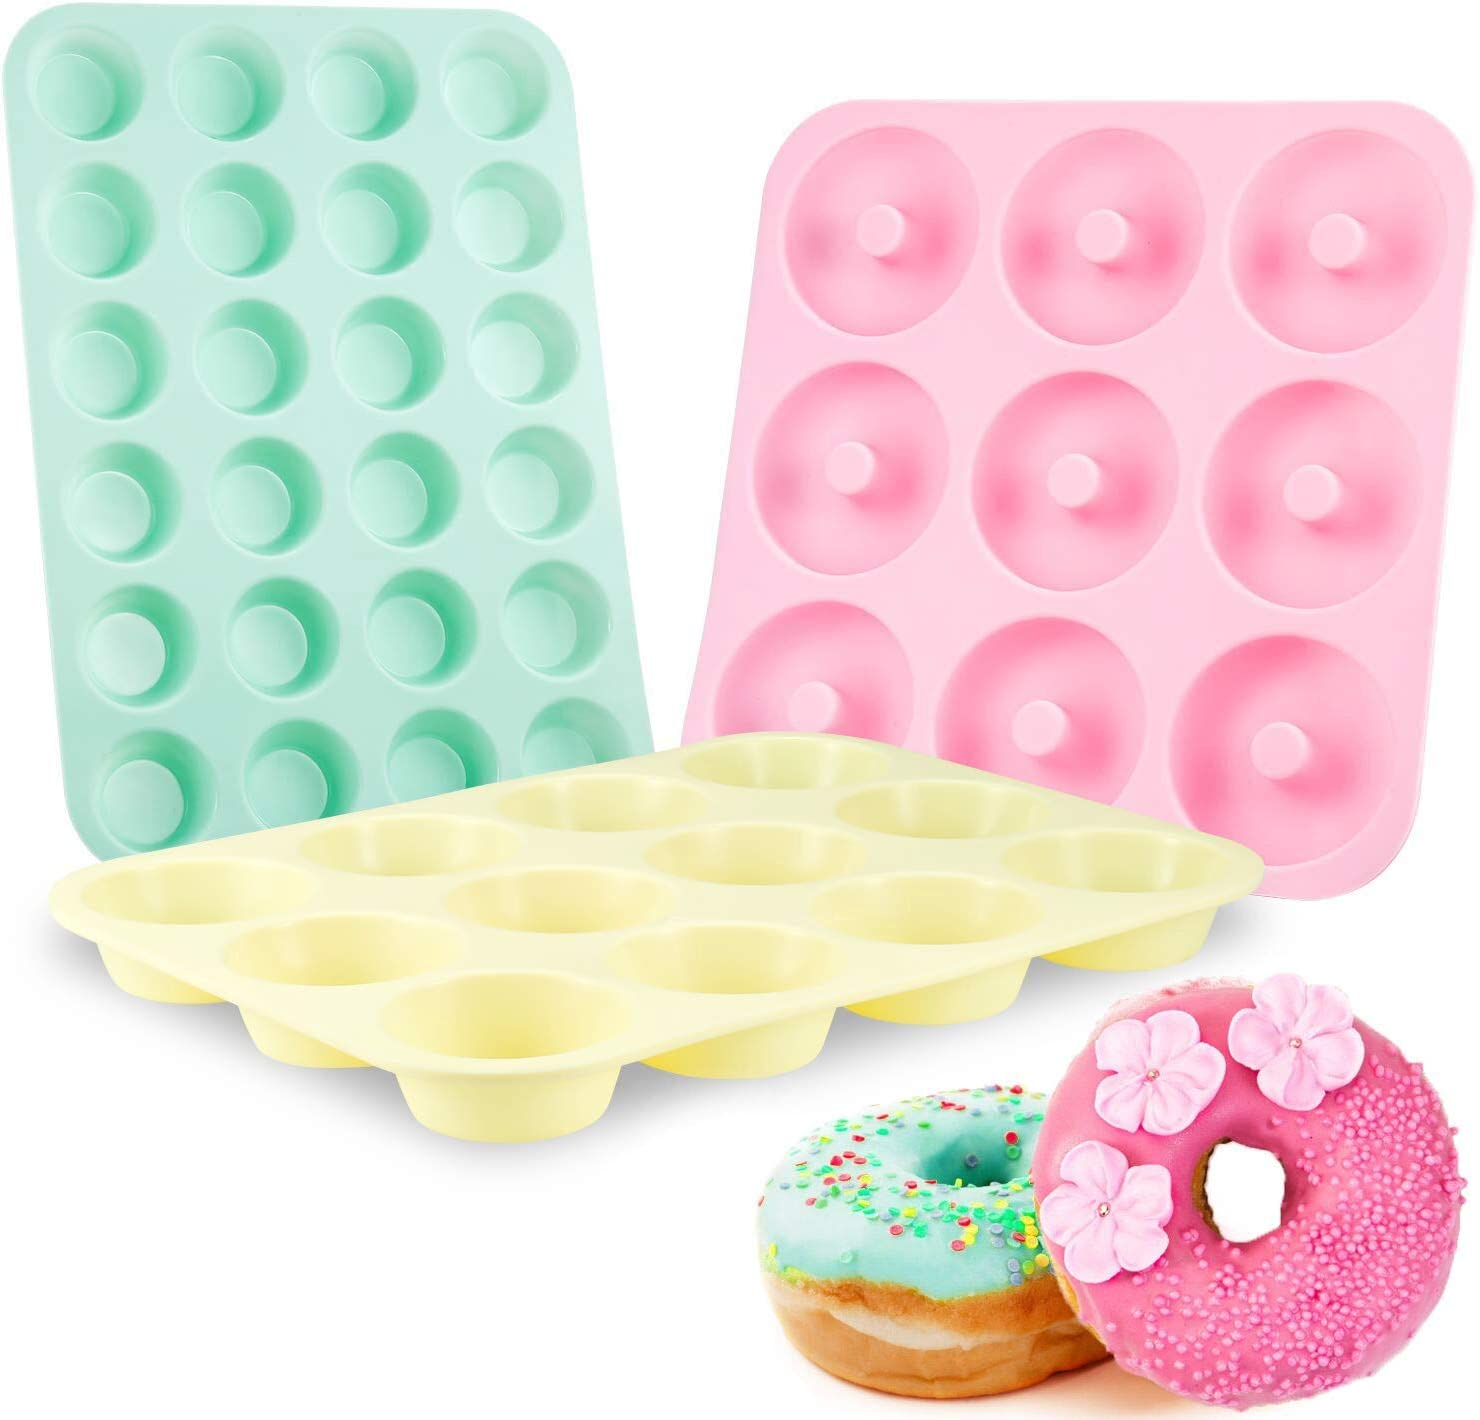 Senbowe Silicone Muffin and Cupcake Pans – Set of 3 | Silicone Cake Baking Molds | Large (12) and Mini (24) |Medium Doughnut (9) | Easy to Clean Non Stick Bakeware | BPA Free and Dishwasher Safe